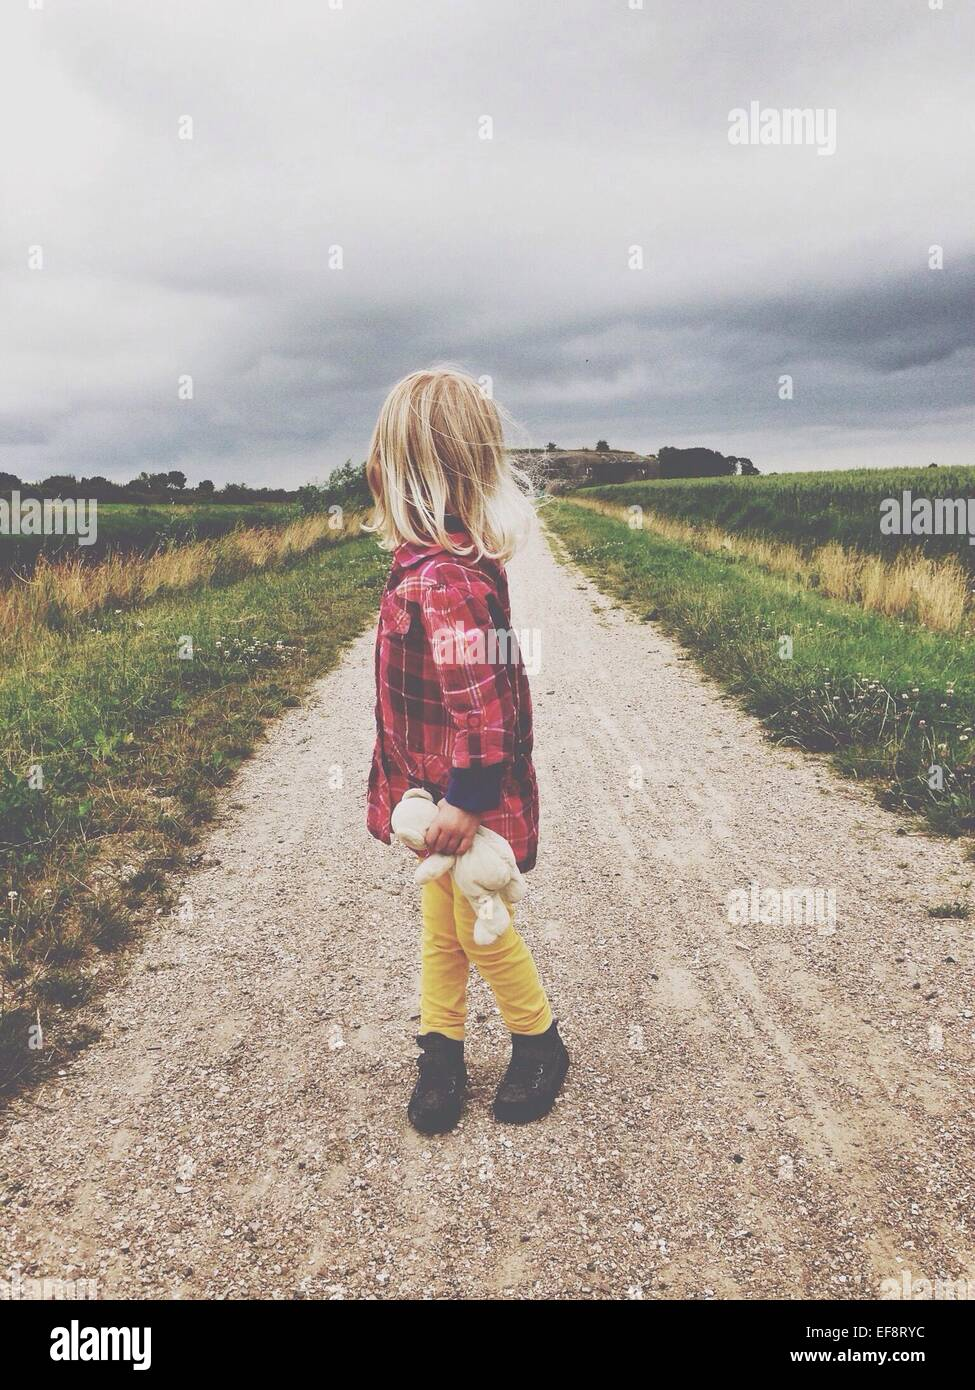 Blonde girl (2-3) standing on dirt road, holding teddy bear, looking over shoulder - Stock Image